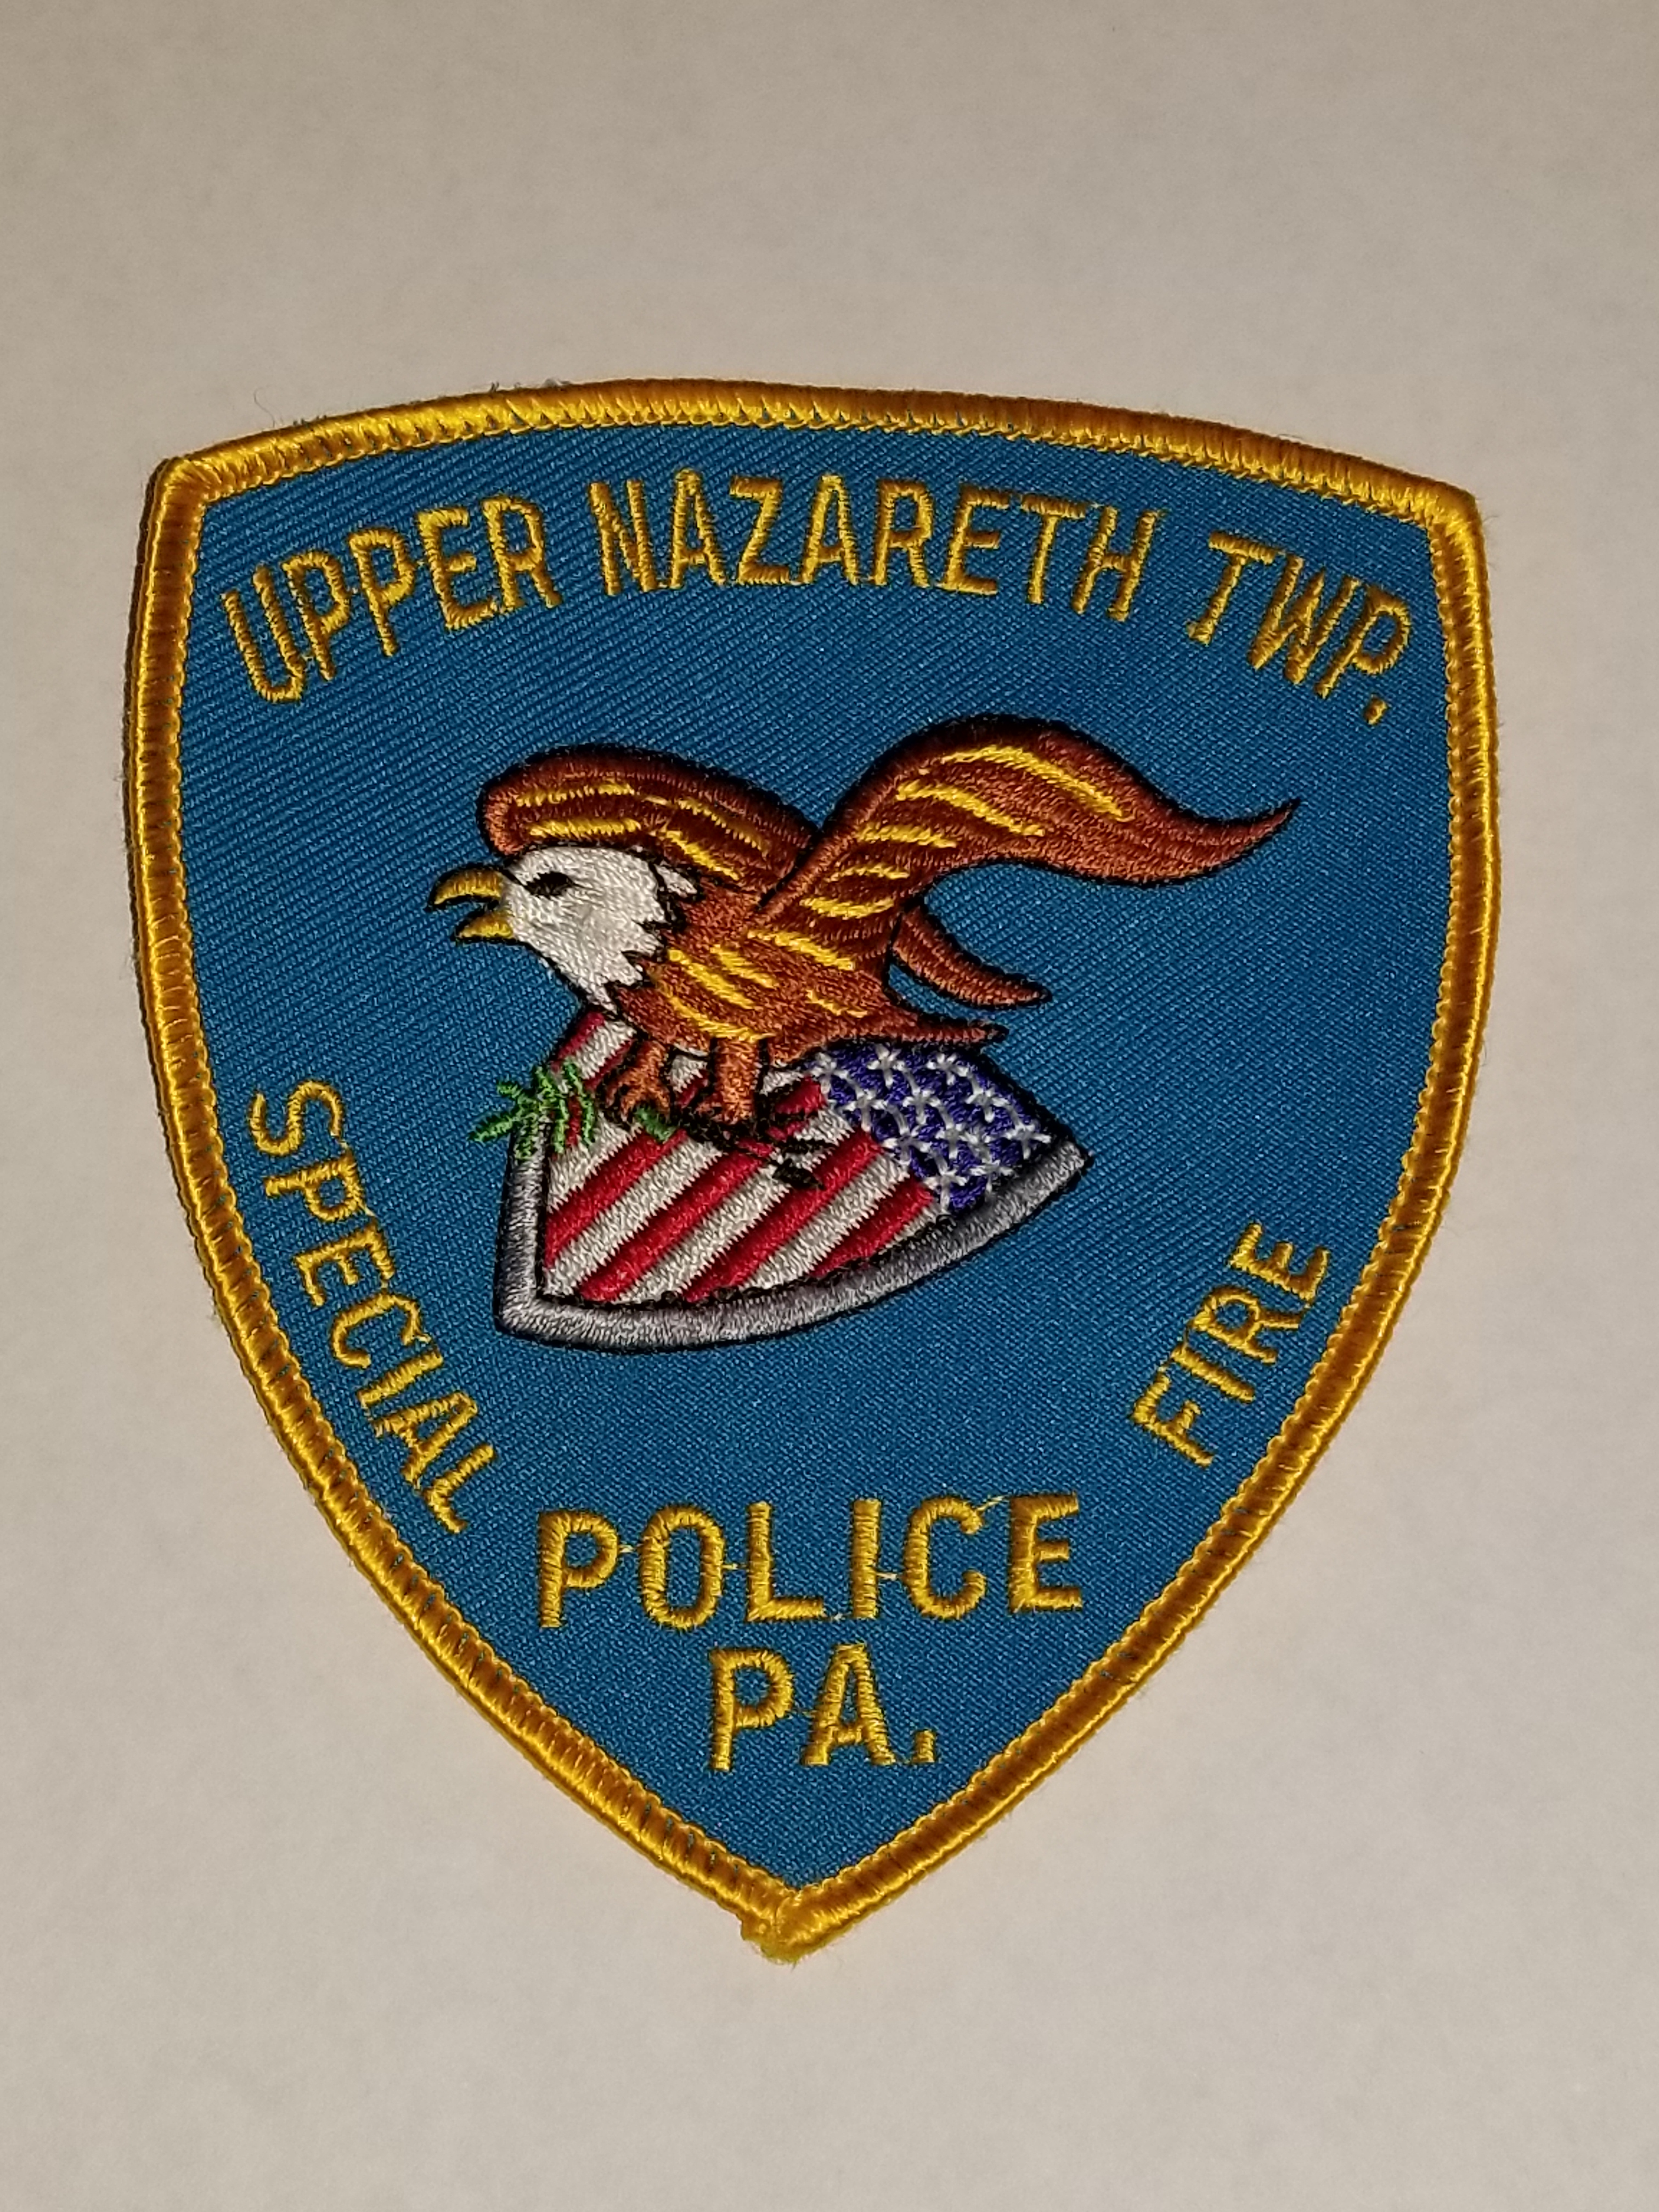 Upper Nazareth Township PA Special Fire Police